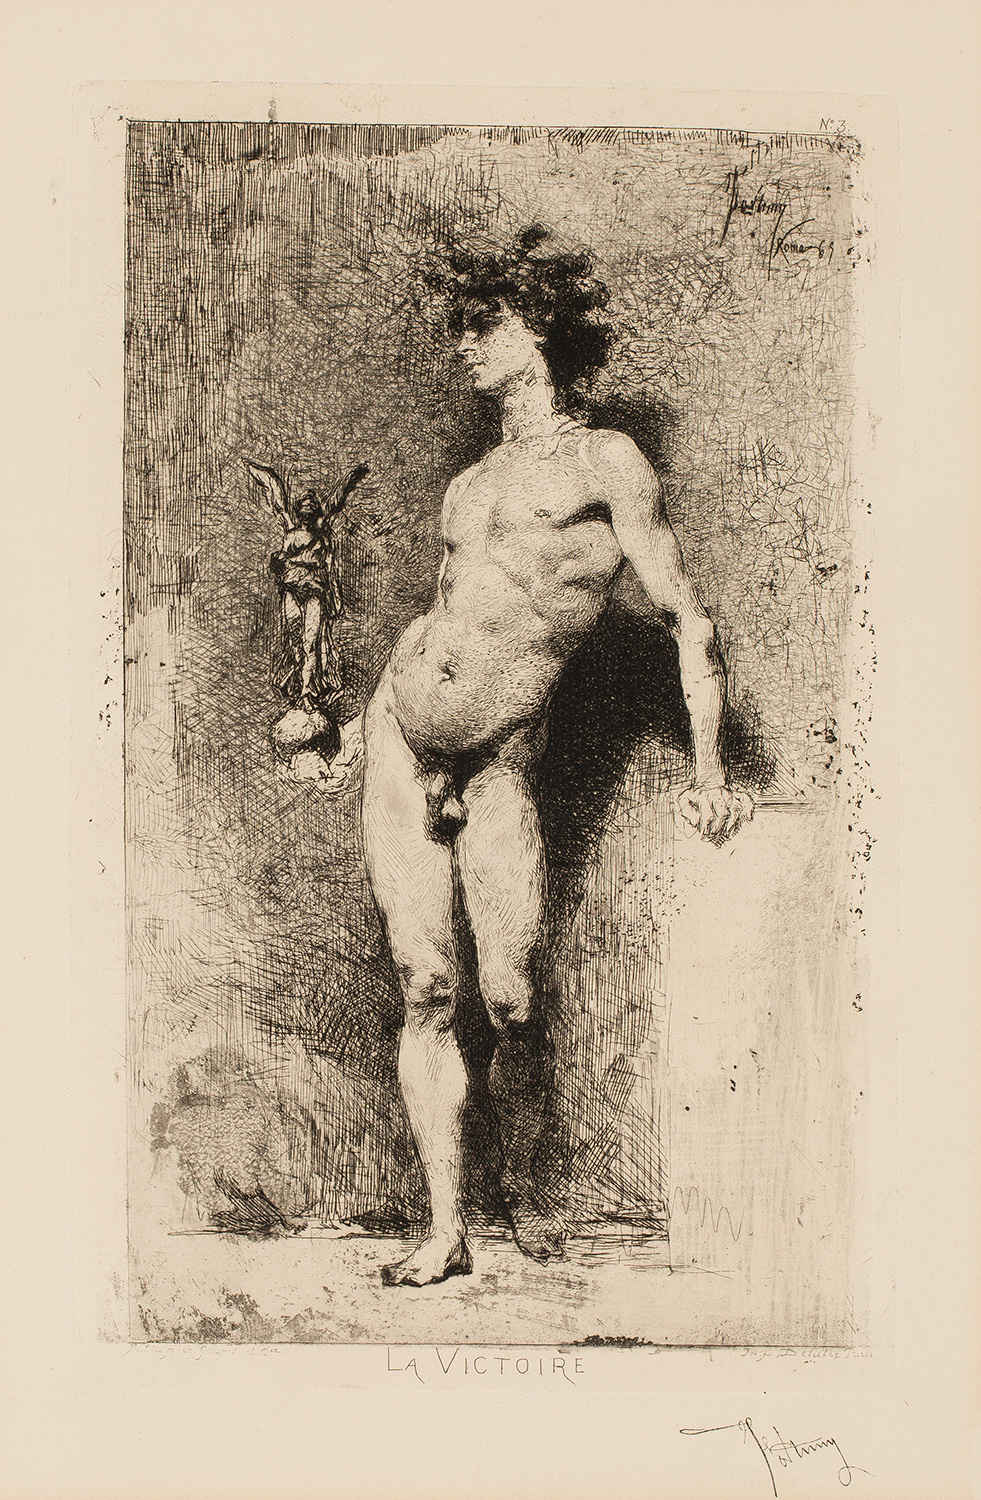 The Victory, Marià Fortuny